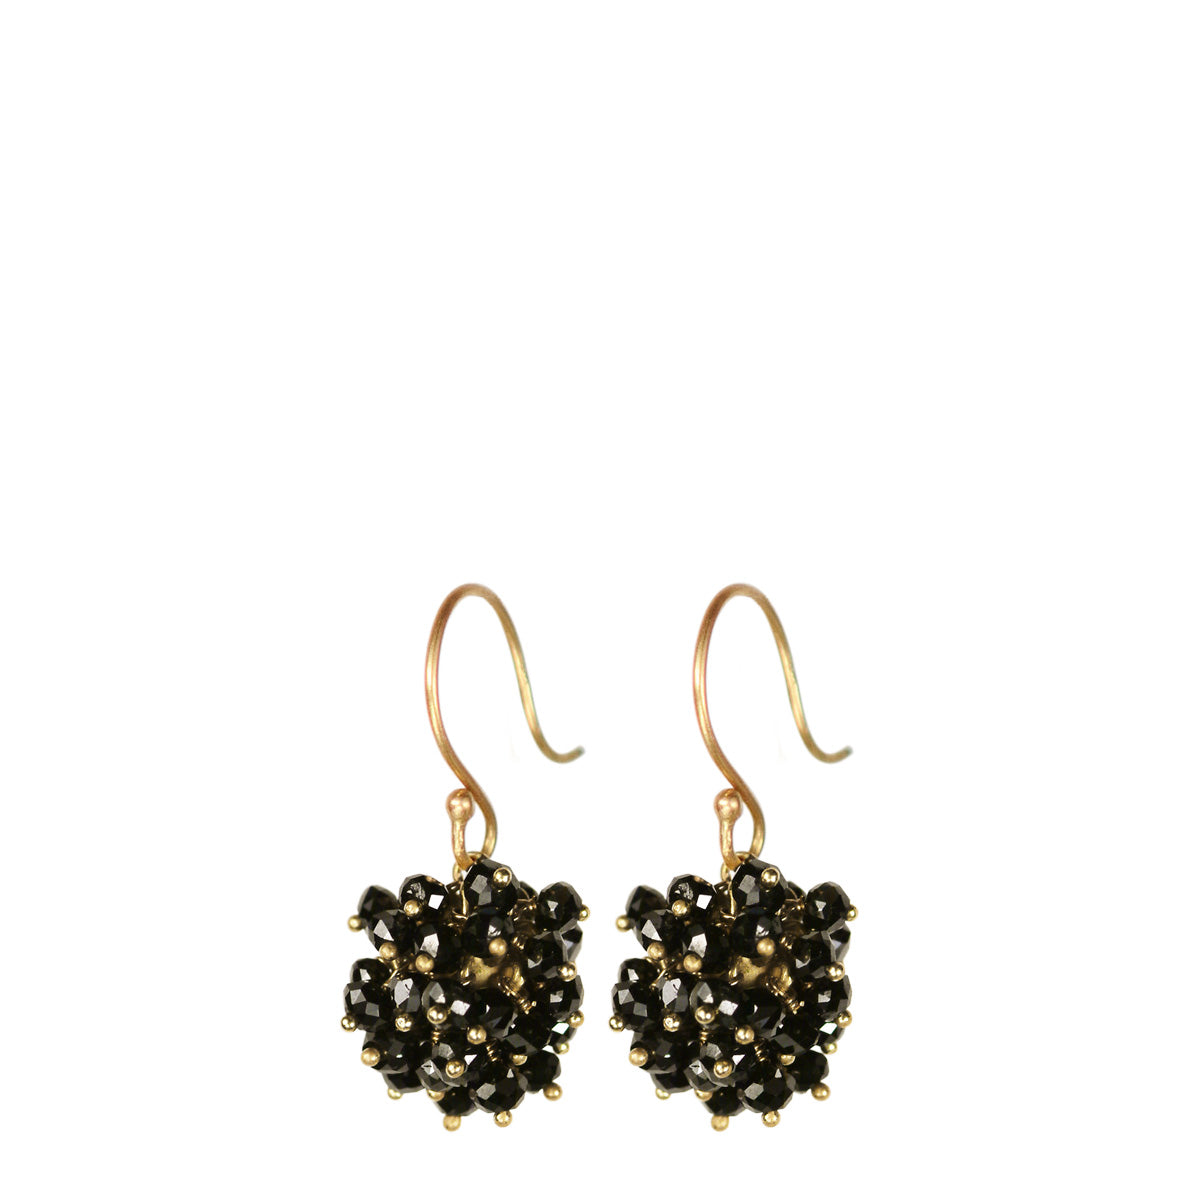 18K Gold All Black Diamond Bead Ball Earrings